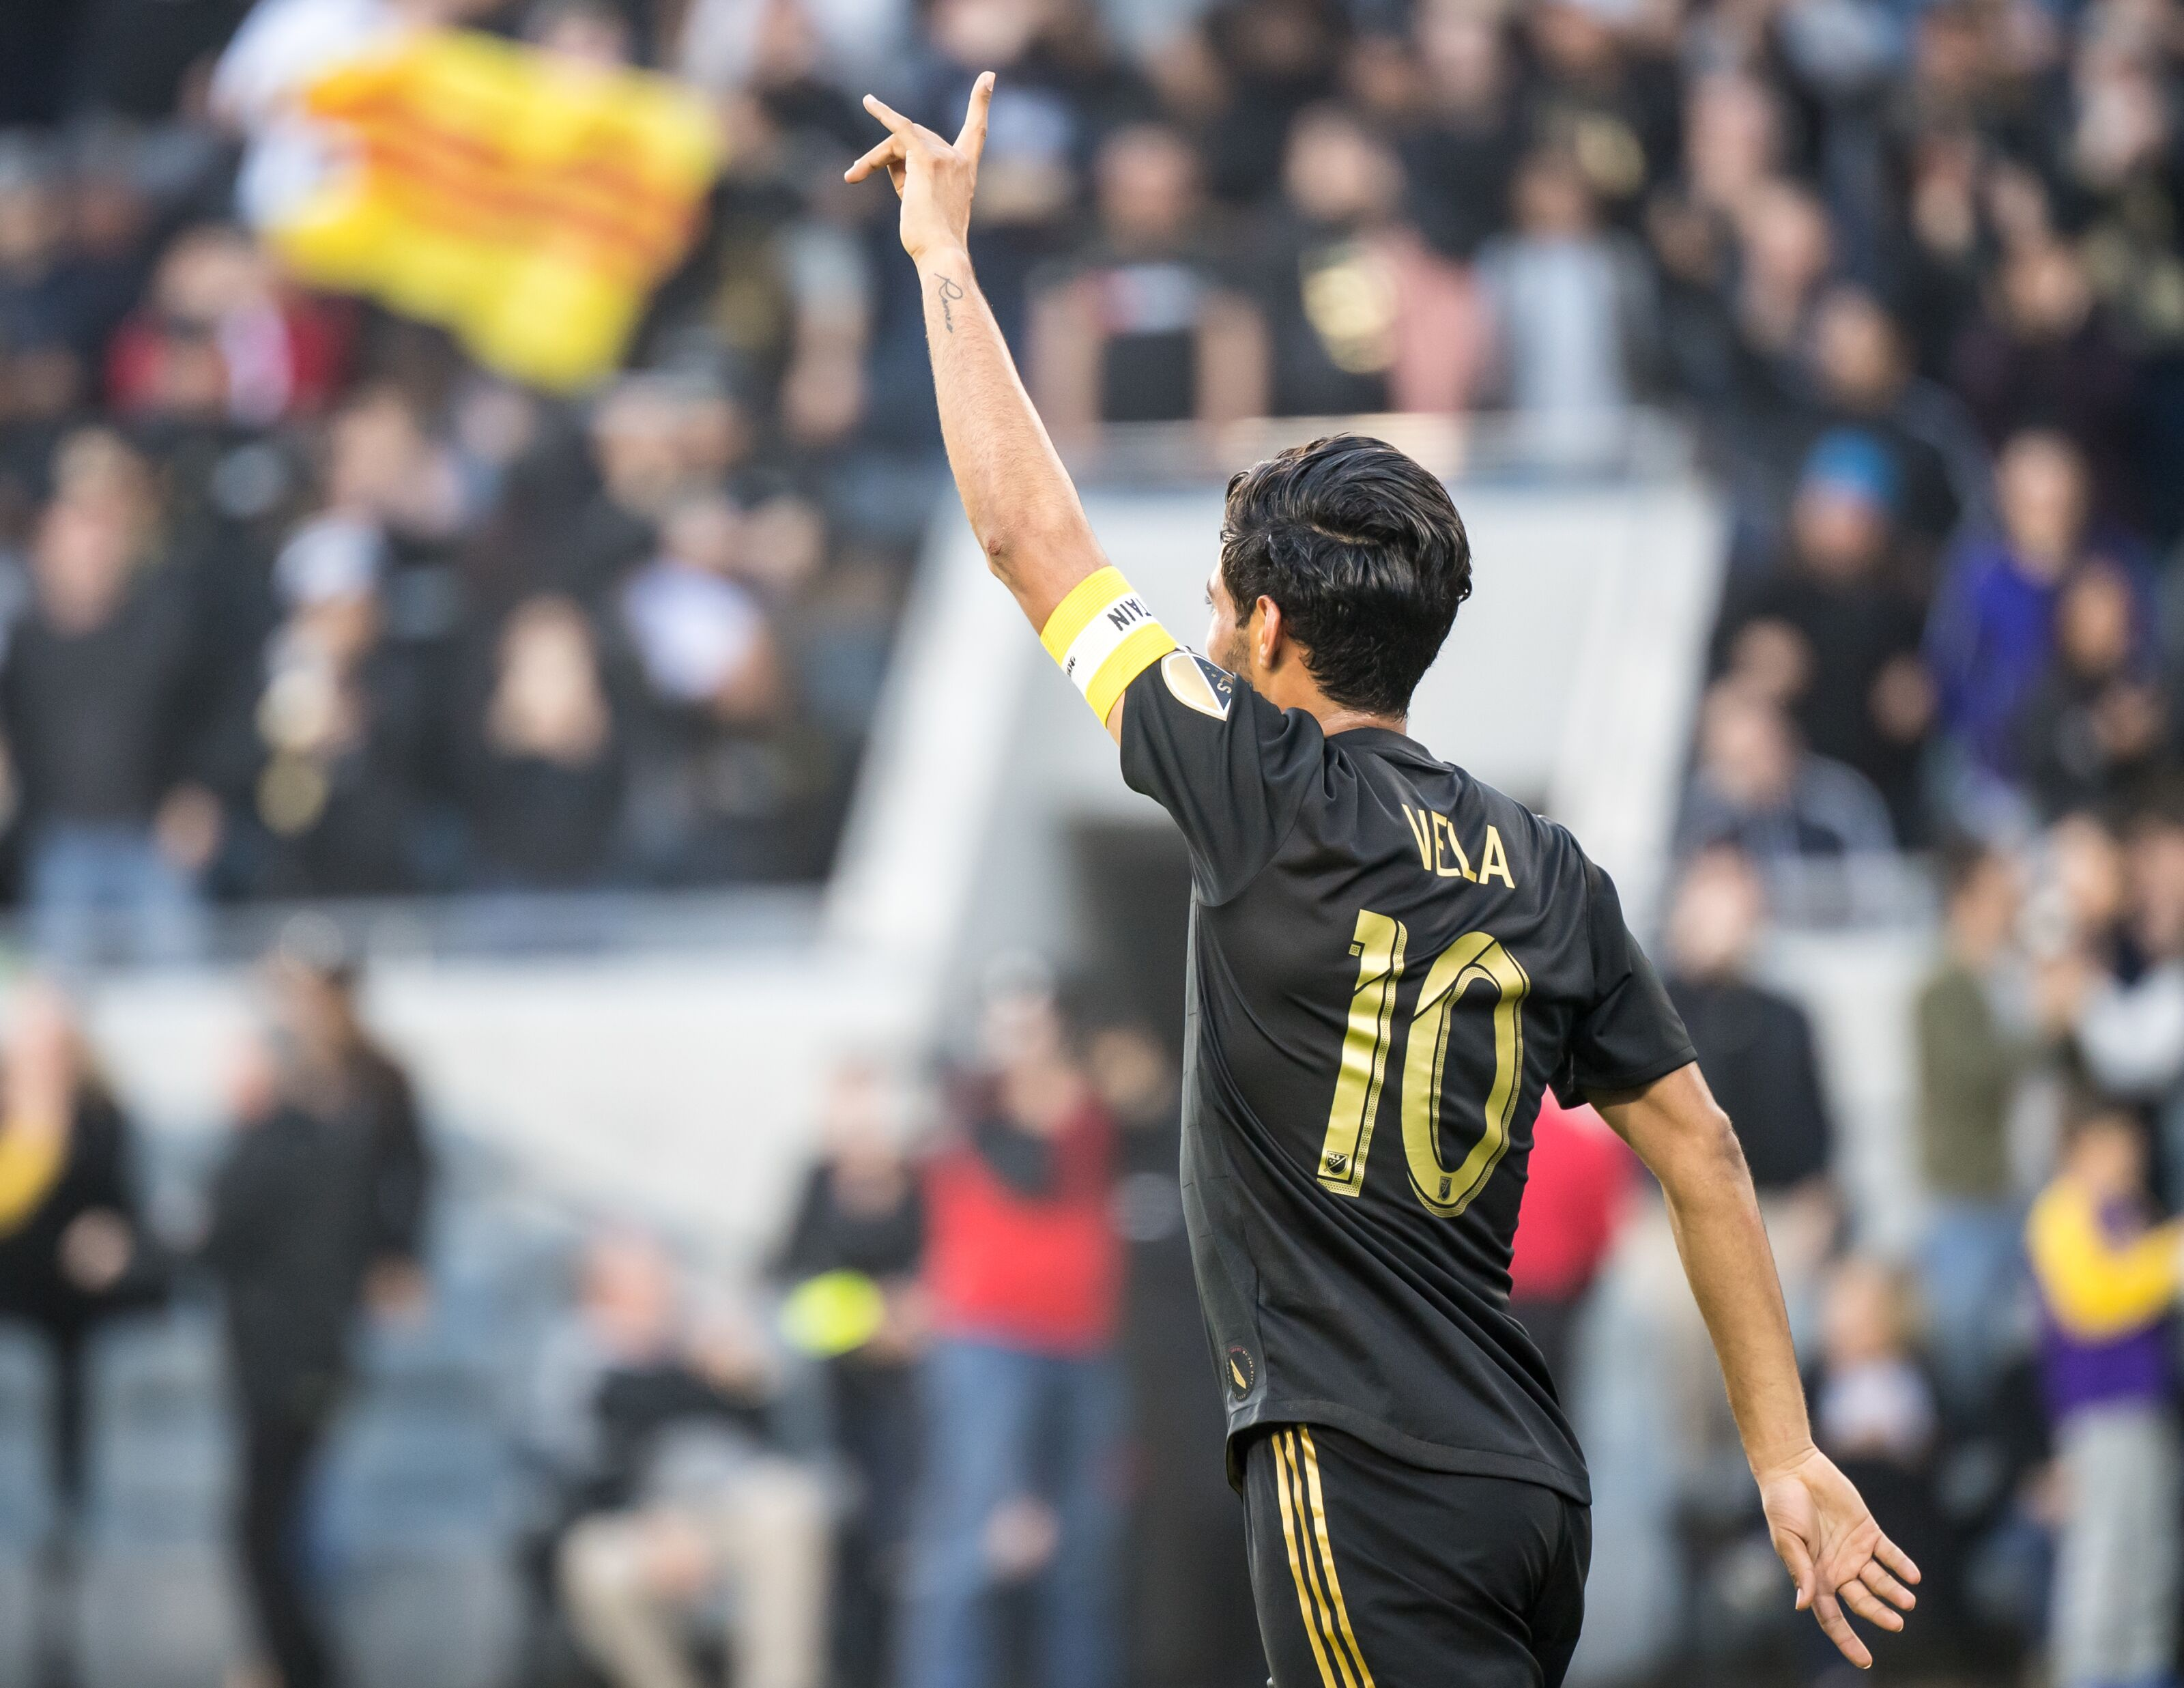 40b7a2a3e24 Vancouver Whitecaps Vs LAFC: 3 things to watch for – Carlos Vela rolls on?